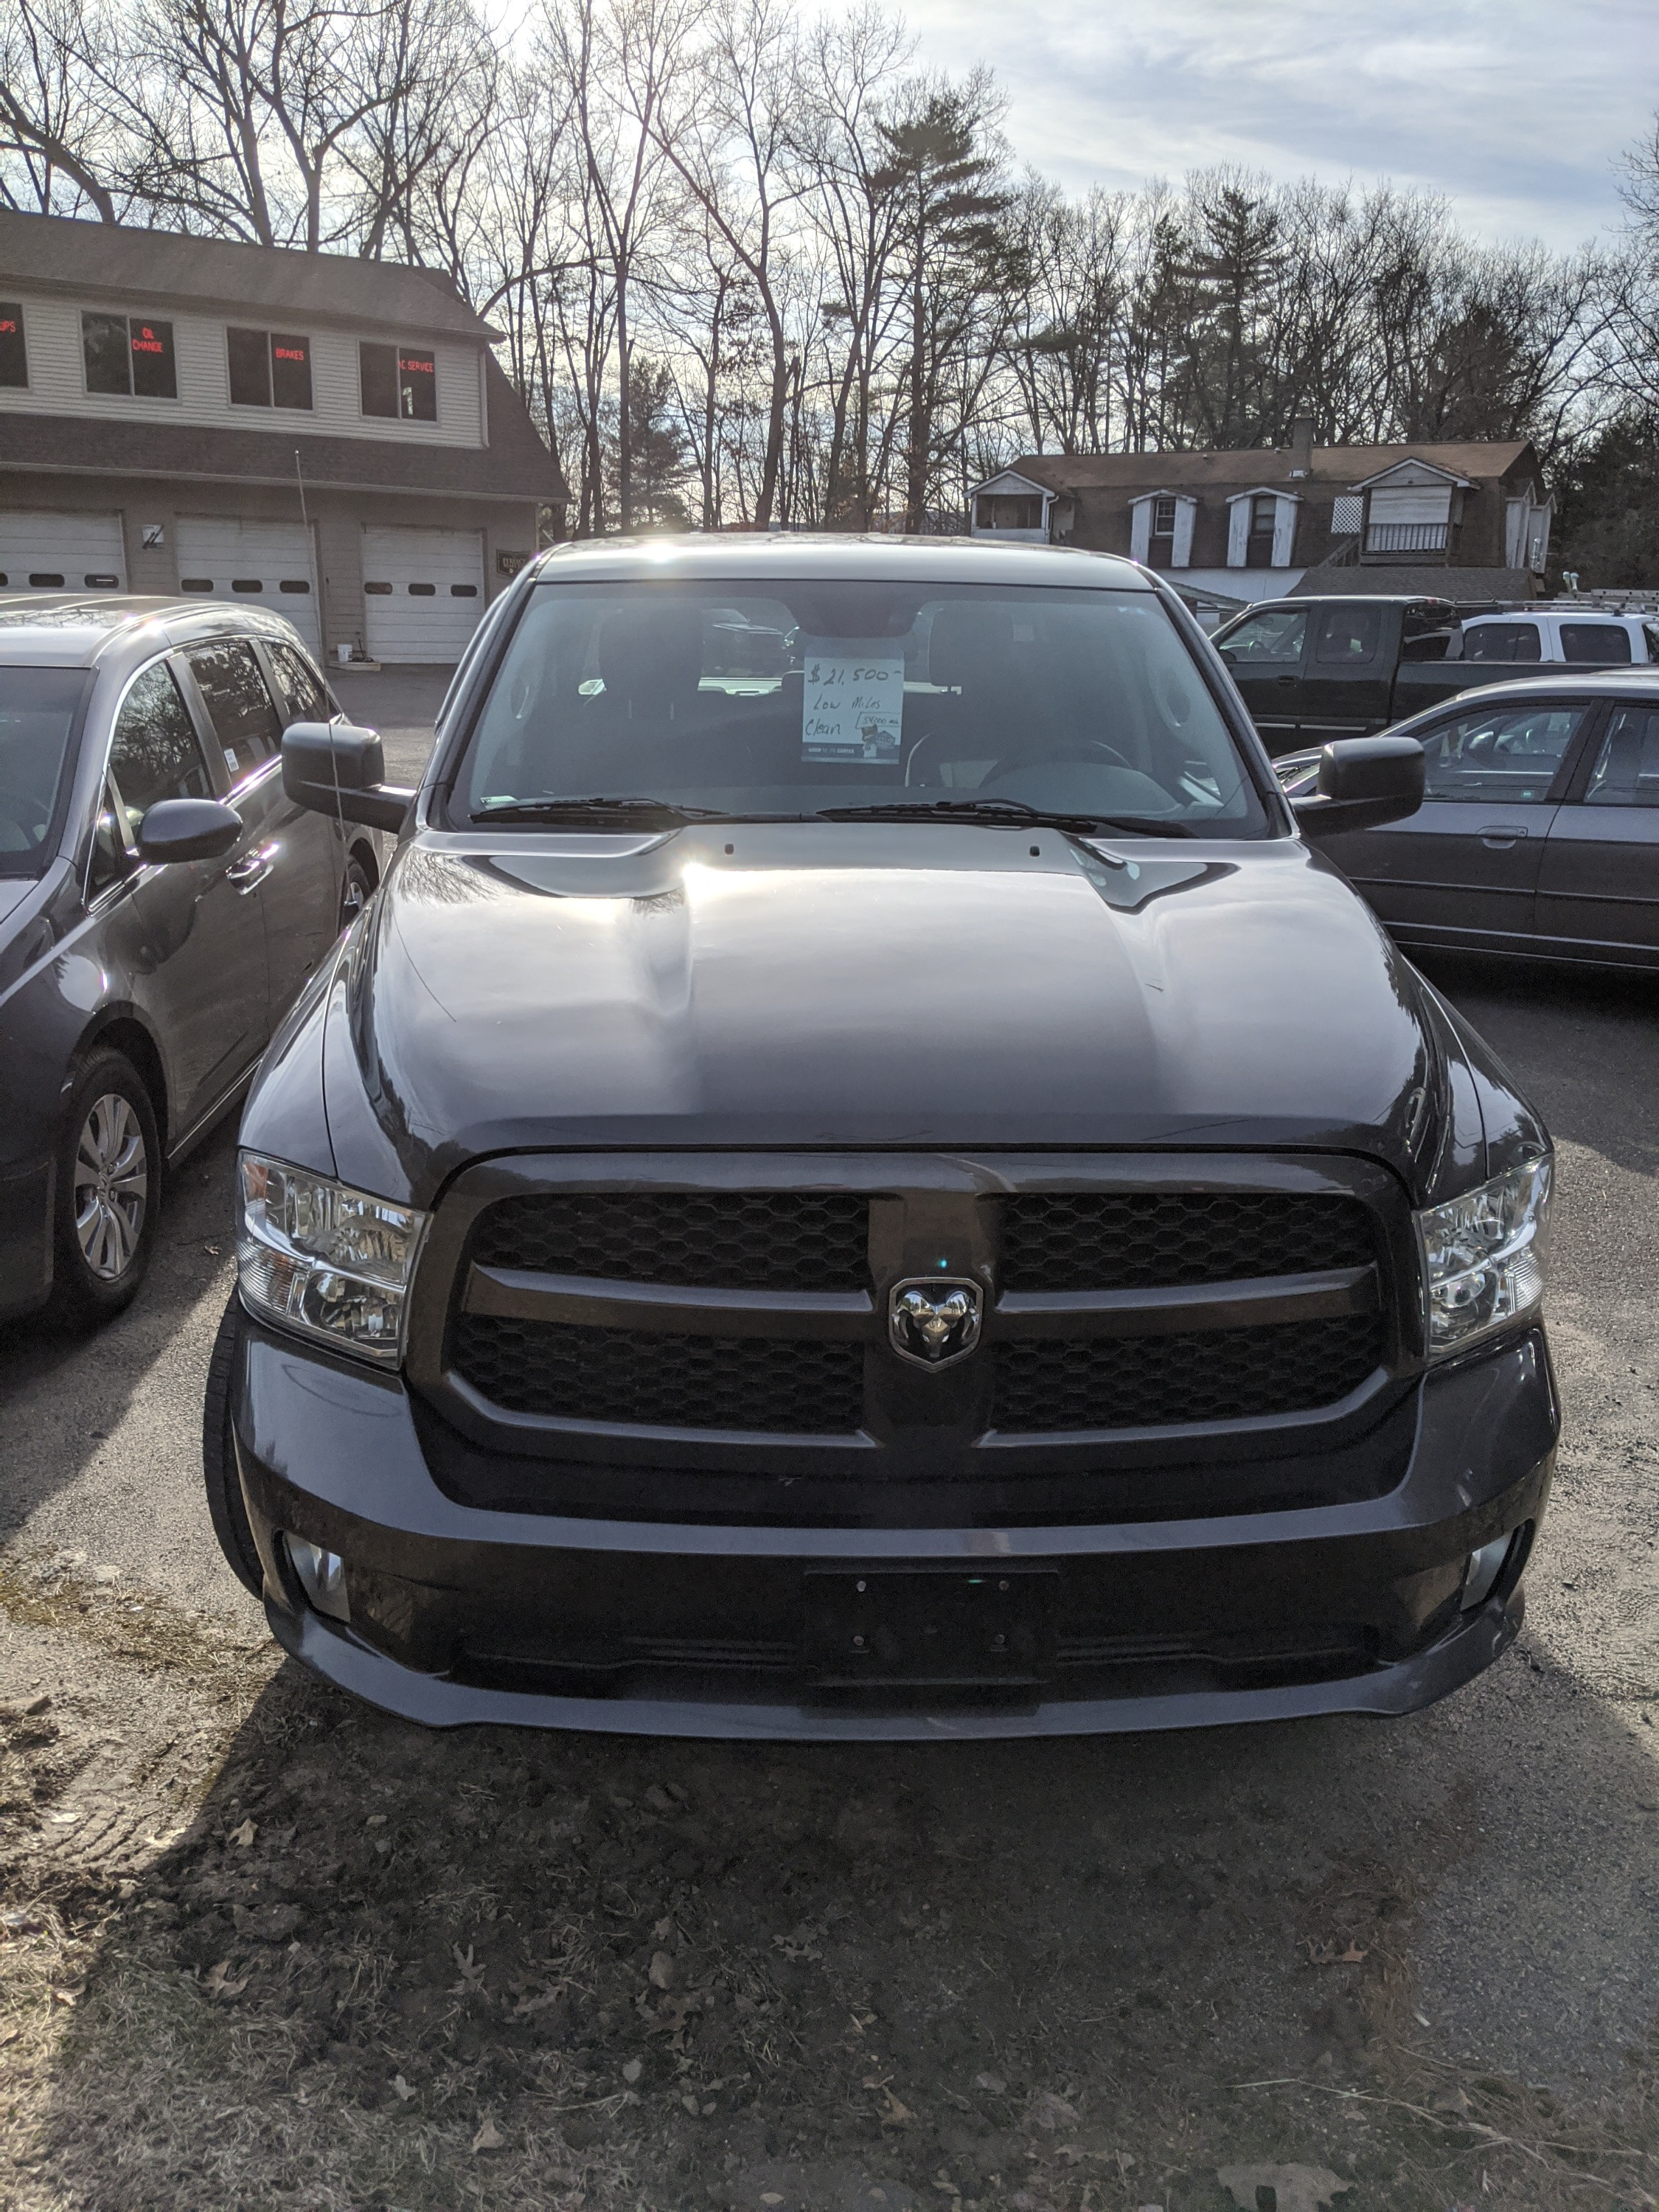 2014 Dodge Ram 1500 with 53,345 miles